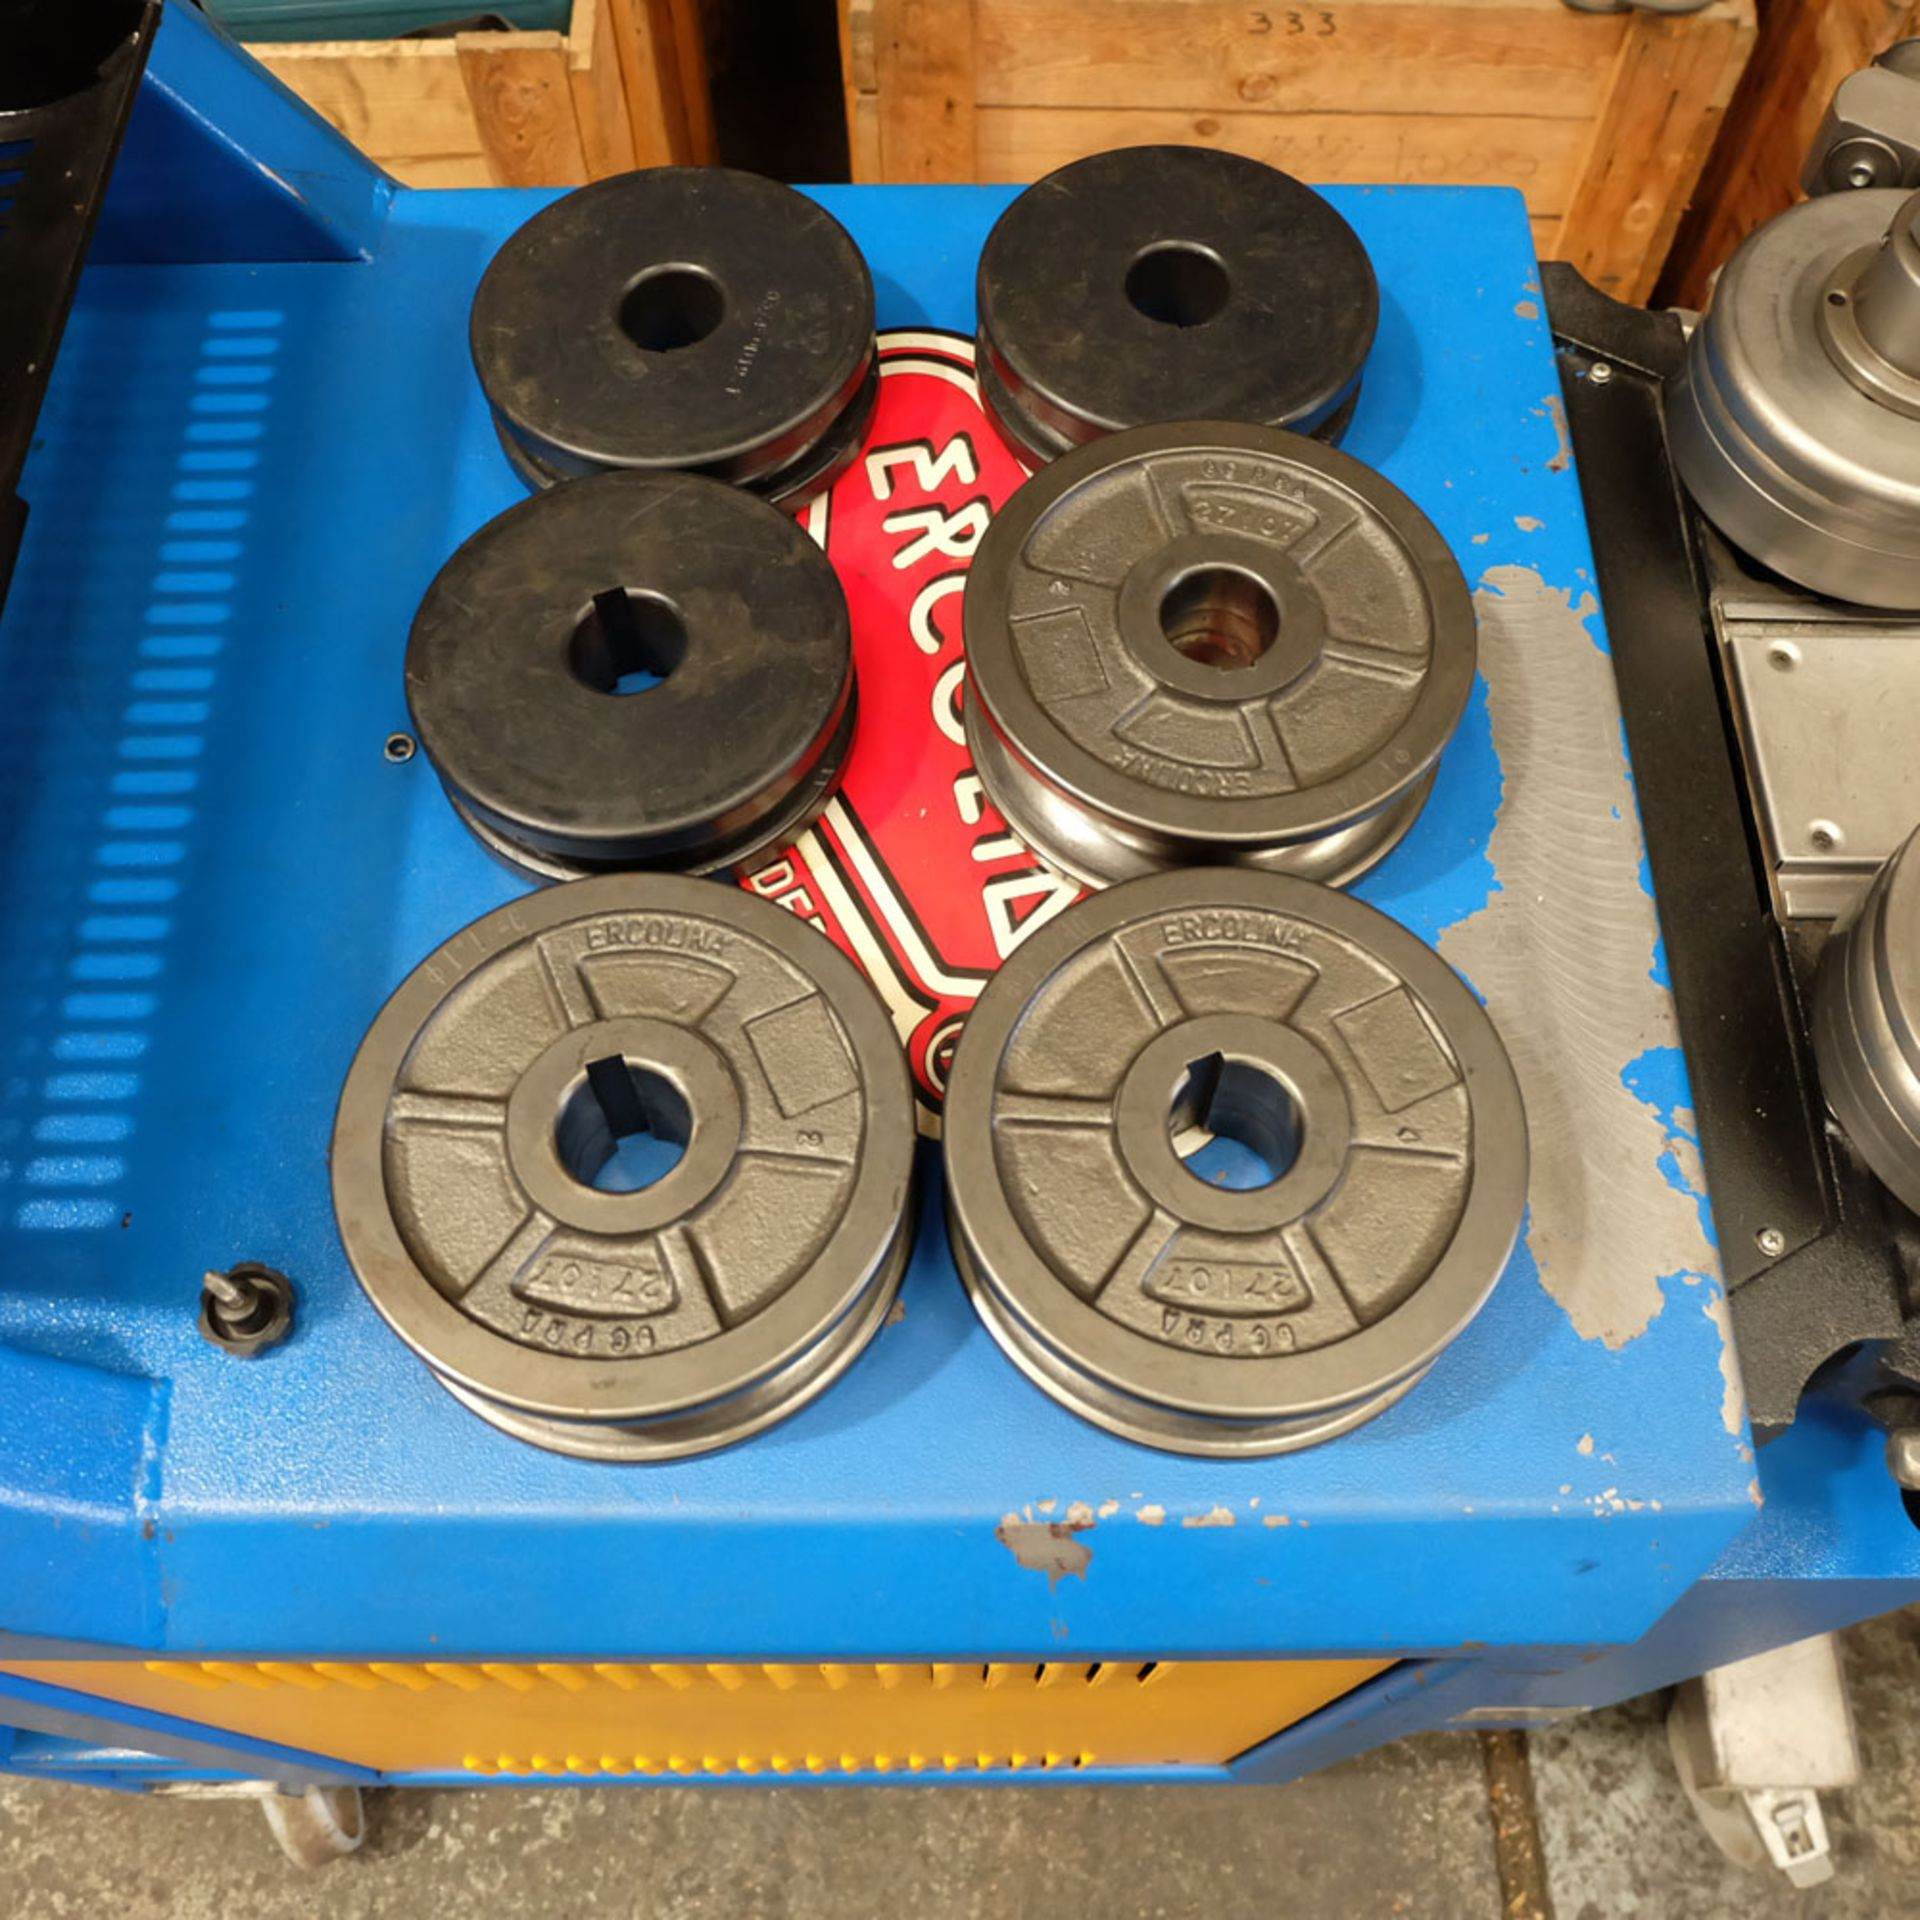 Ercolina CE40MR3 - Ring rollers. Horizontal/Vertical. Roll Shaft Diameter 40mm. - Image 12 of 14